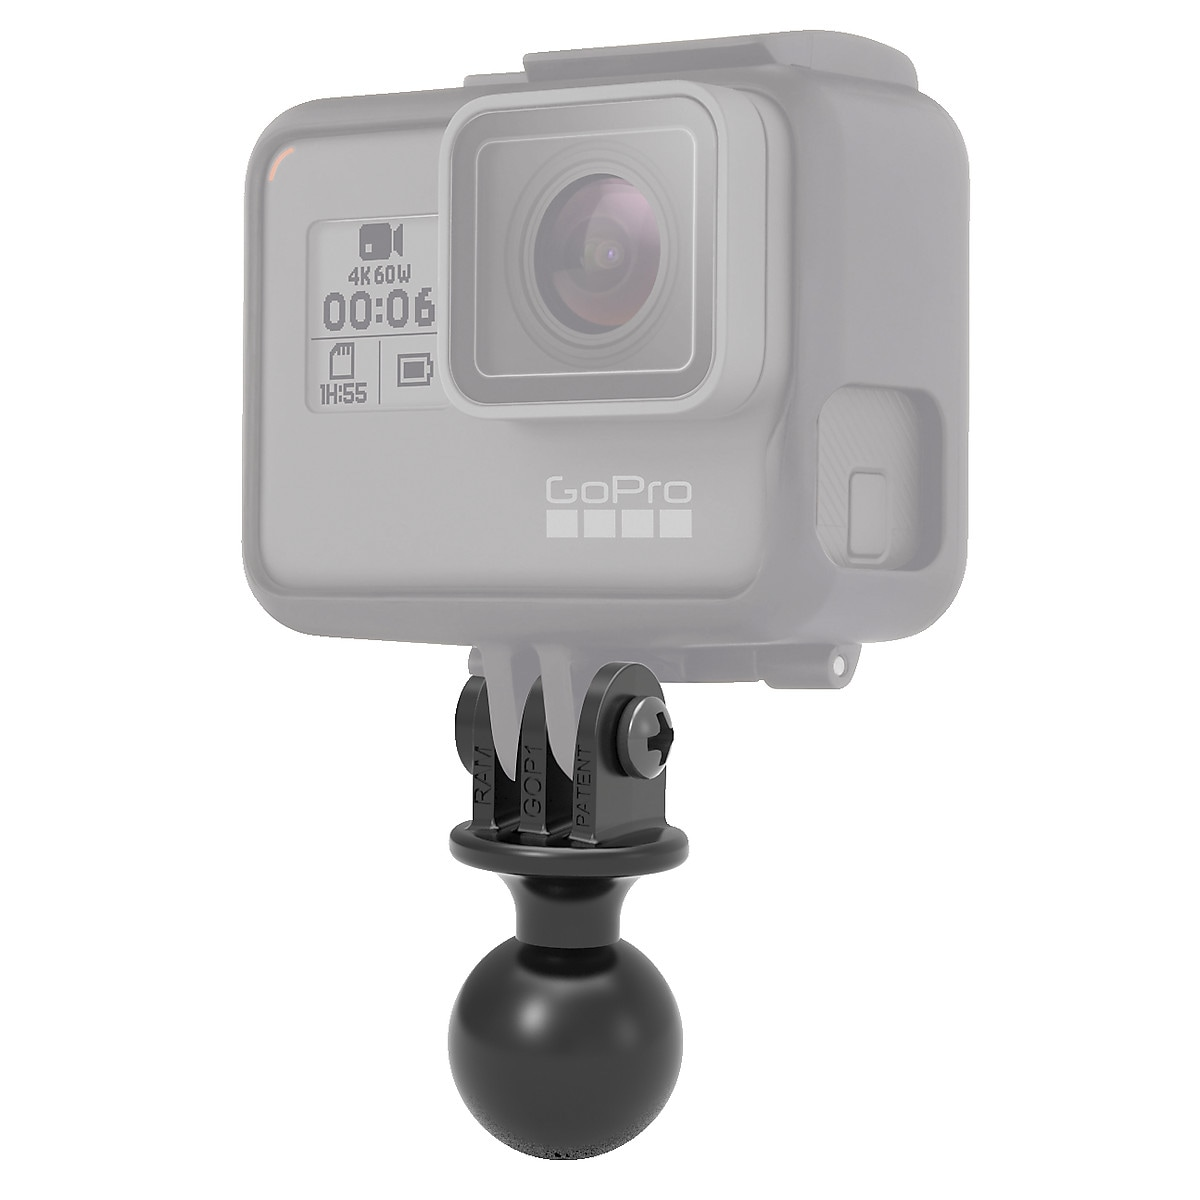 Adapter för GoPro actionkamera Ram Mounts